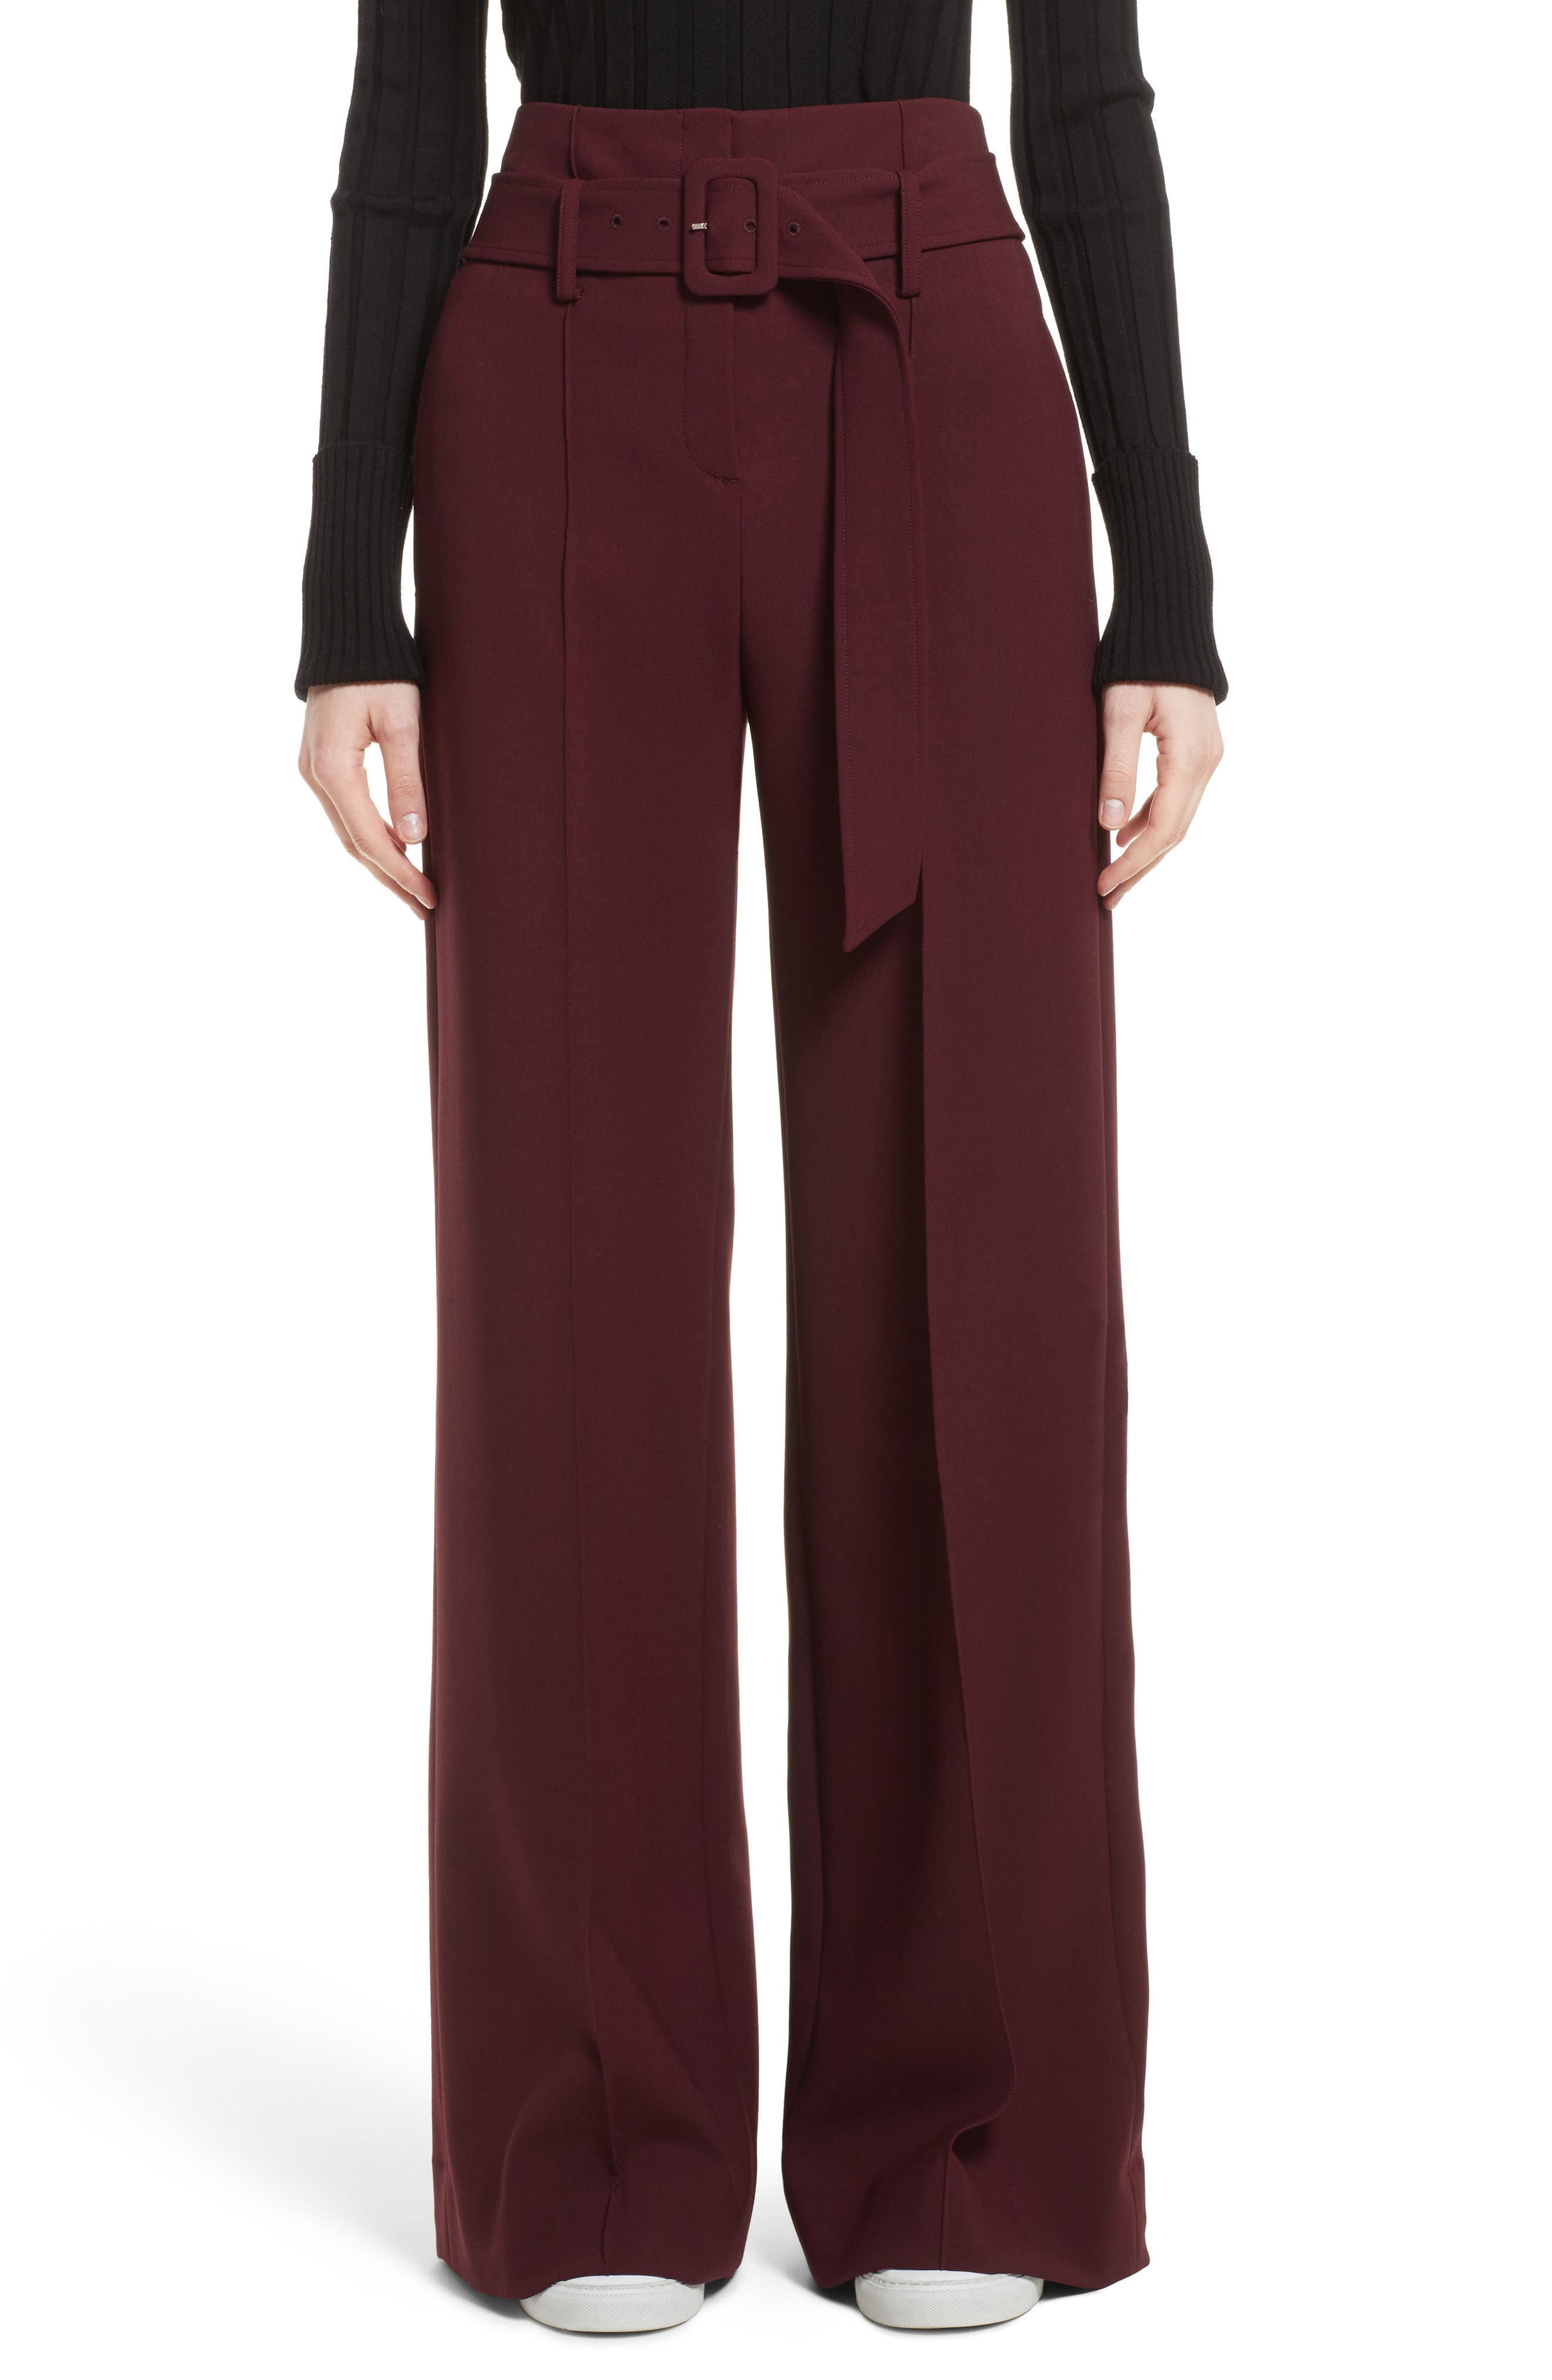 Camogie High Waist Belted Pants,                         Main,                         color, 933